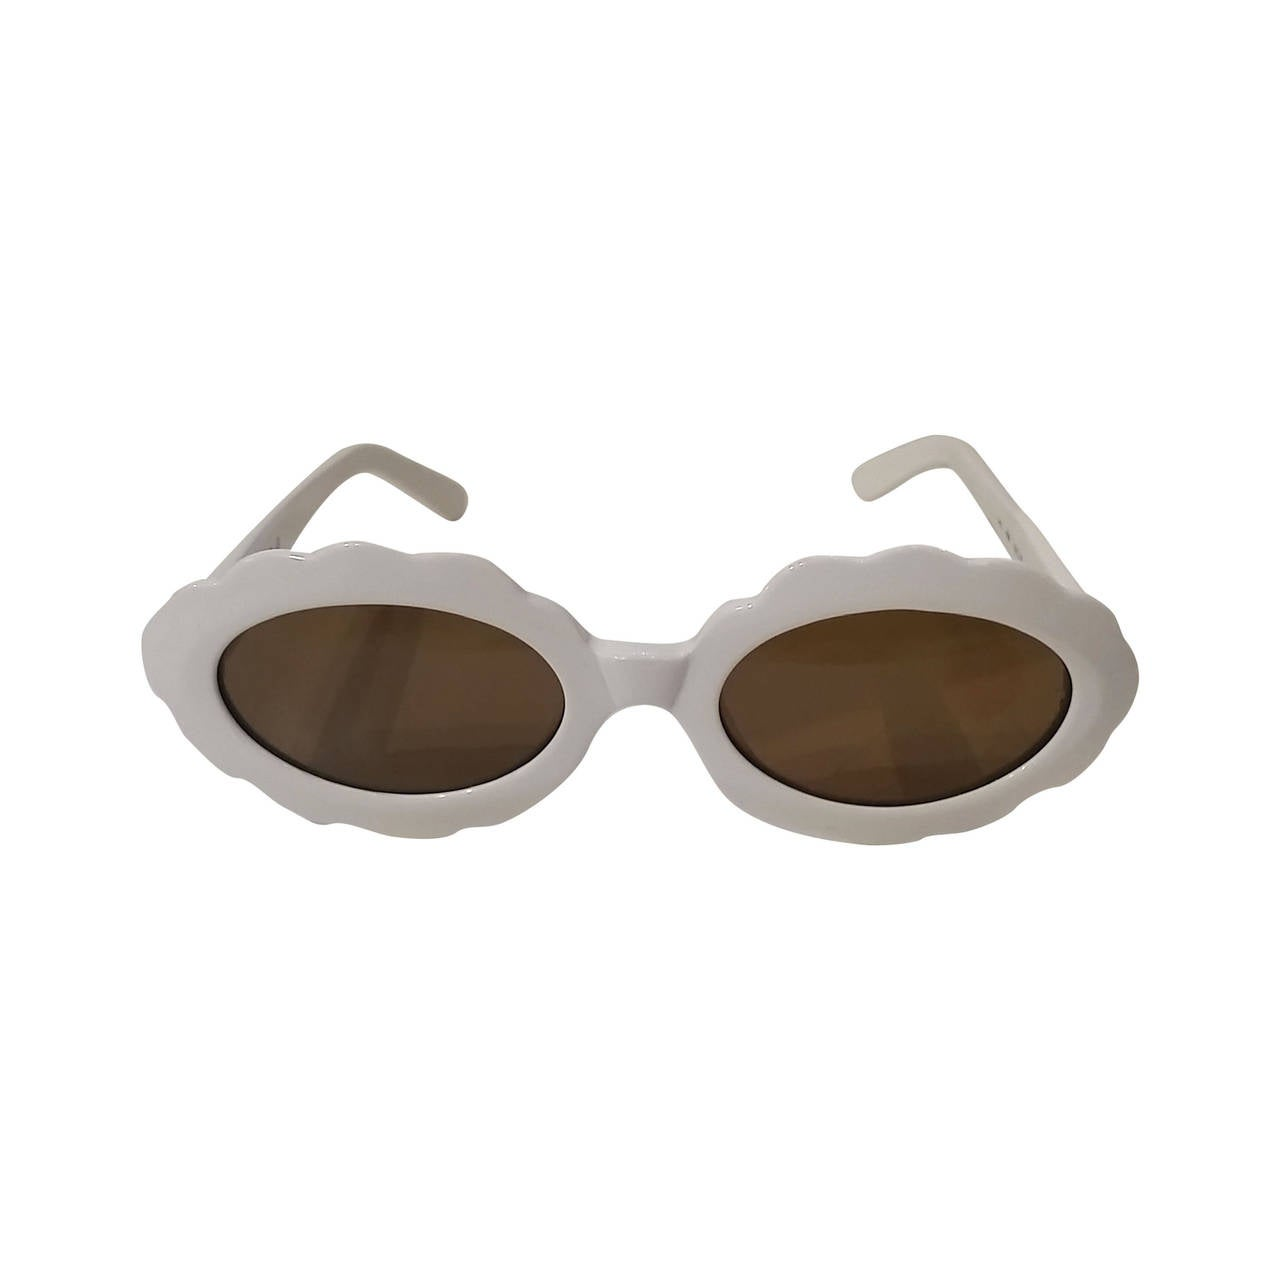 1980s Moschino by Persol white sunglasses For Sale